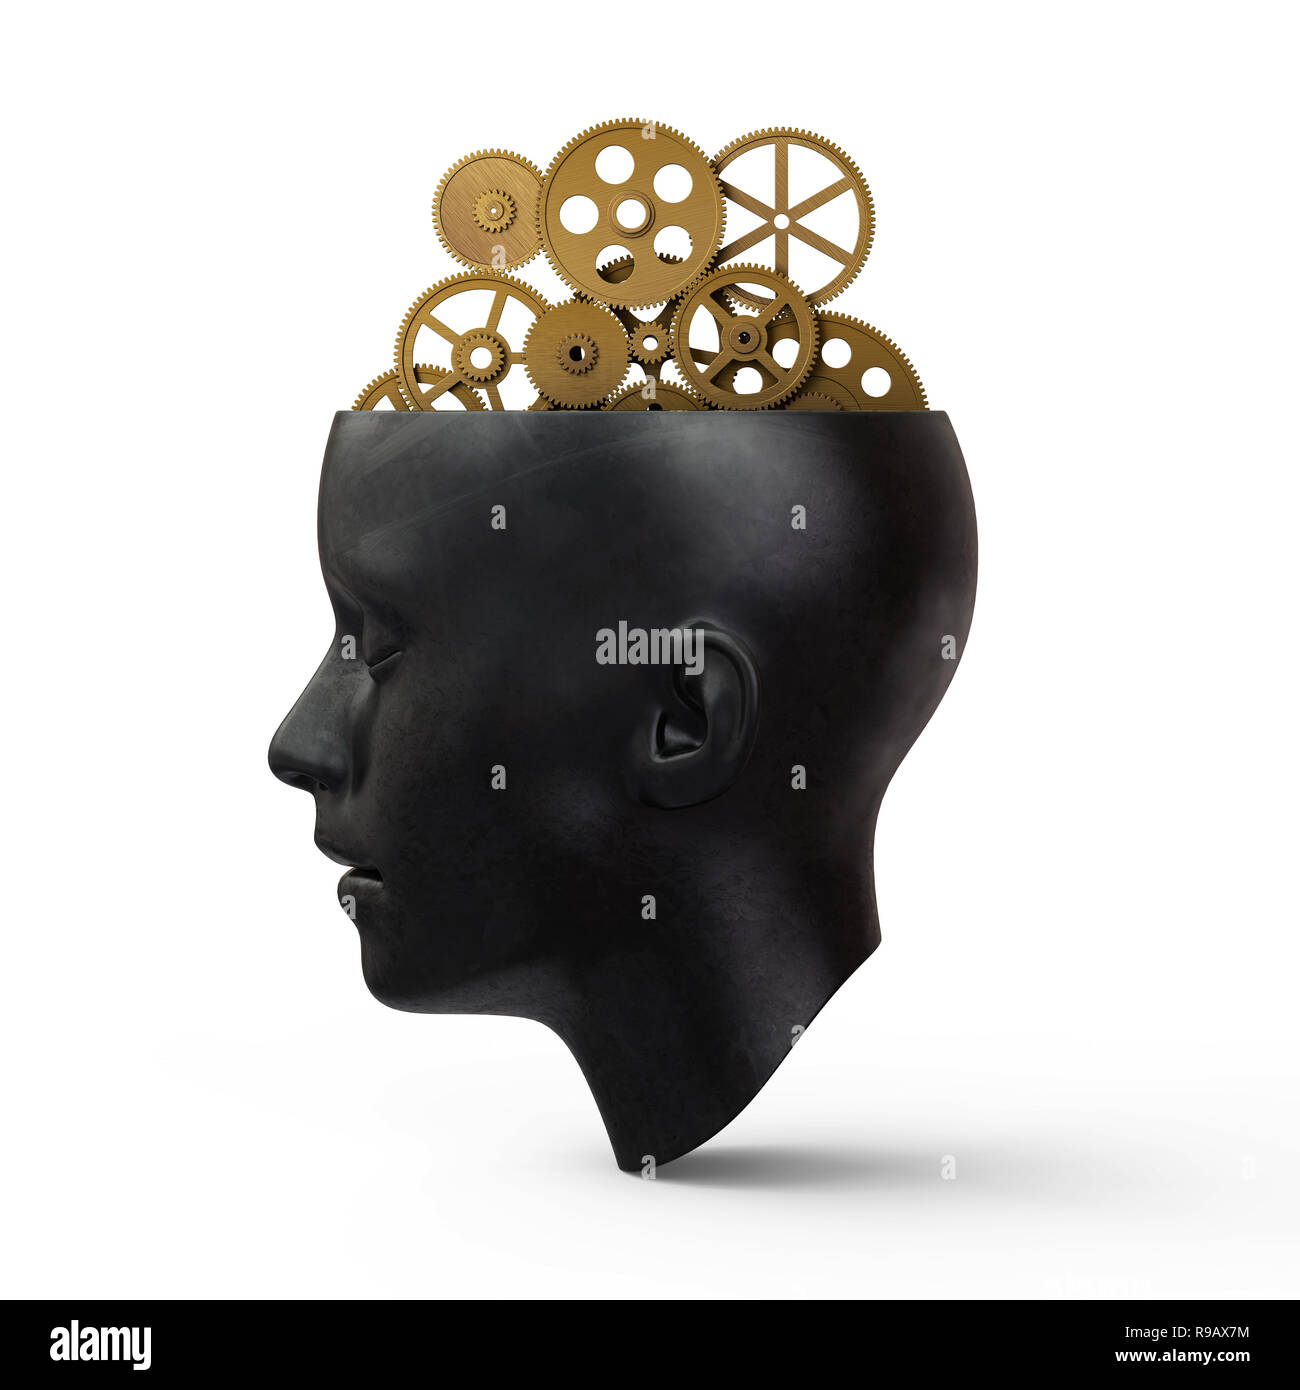 Head With Gears,3d rendering,conceptual image. Stock Photo